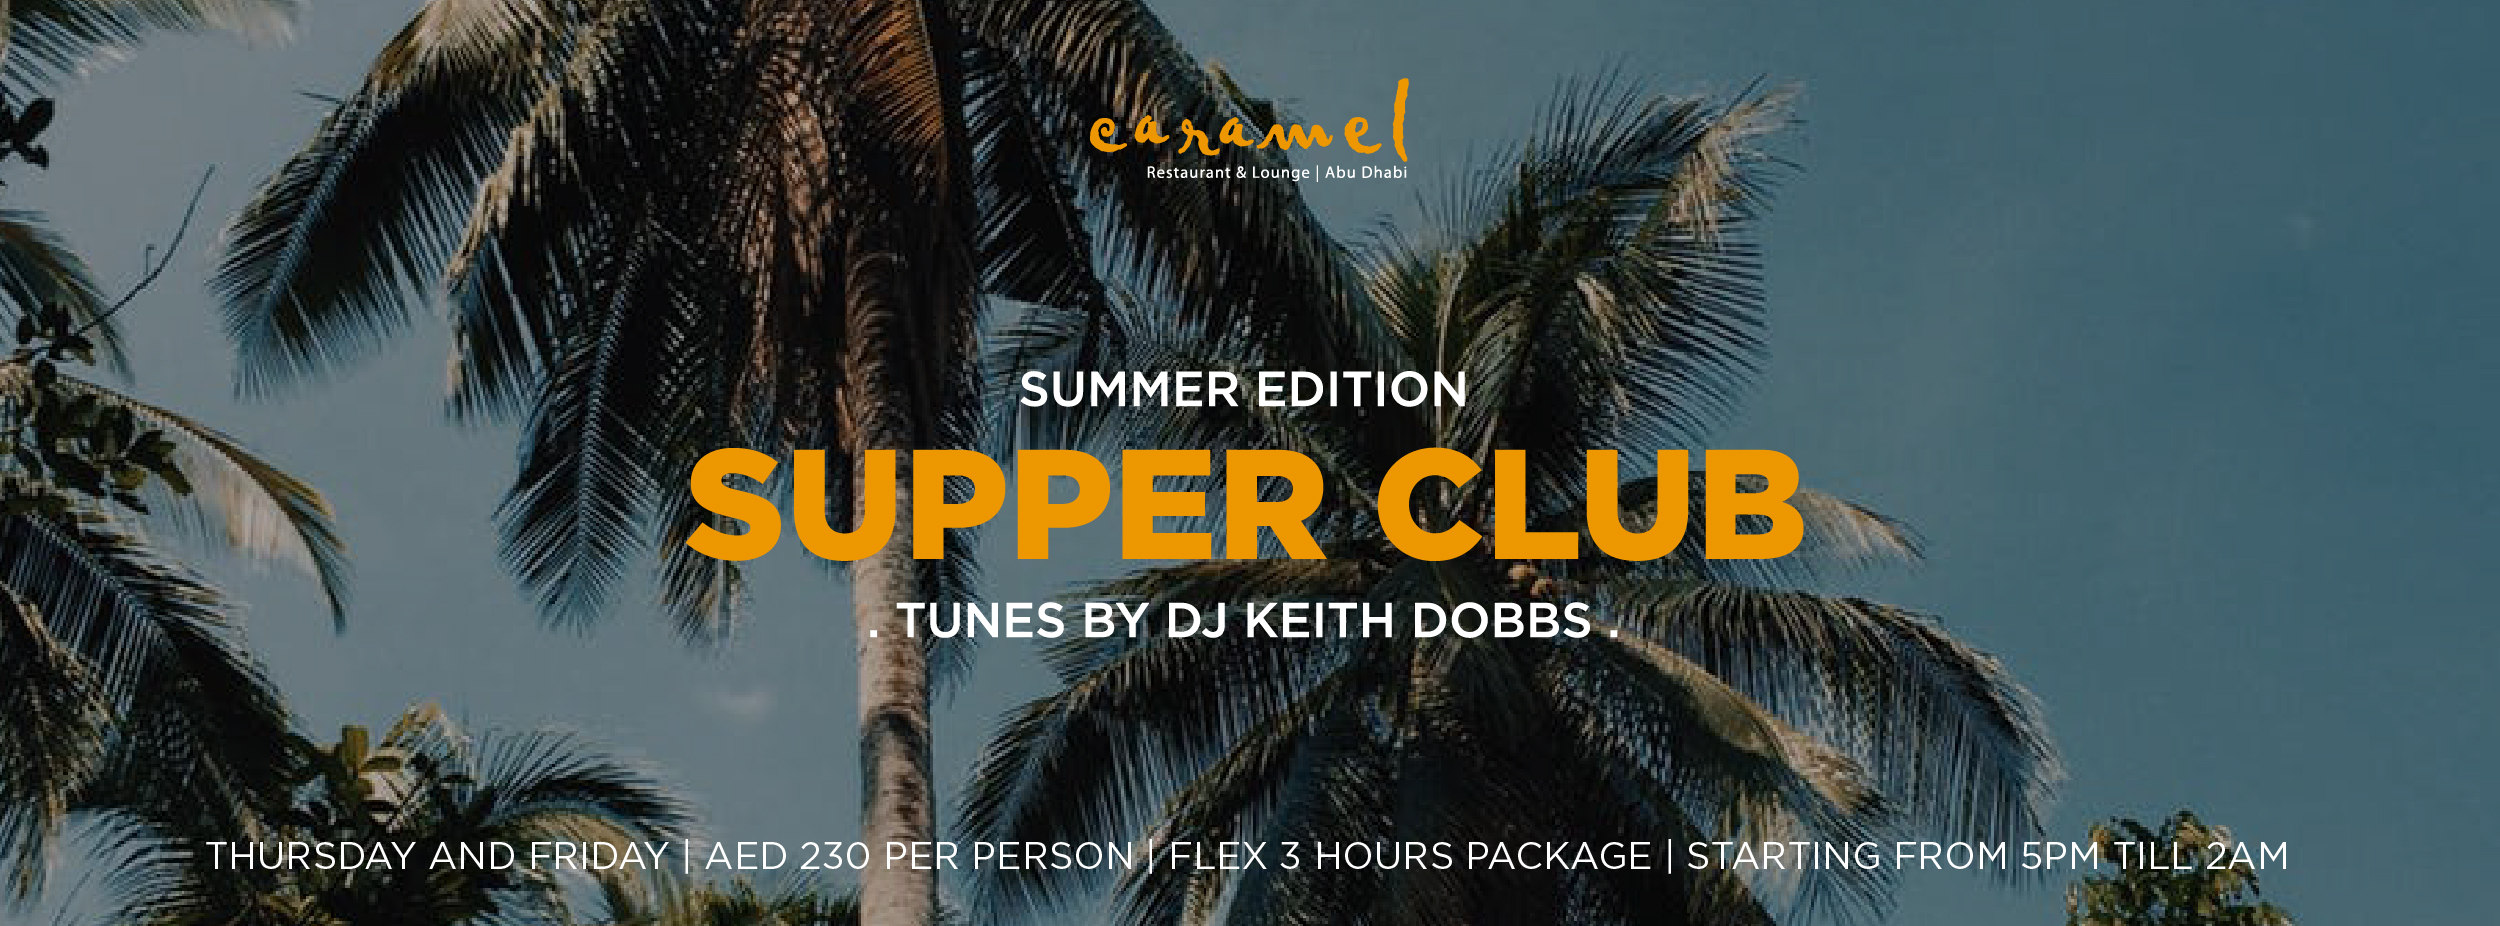 CARAMEL Supper Club